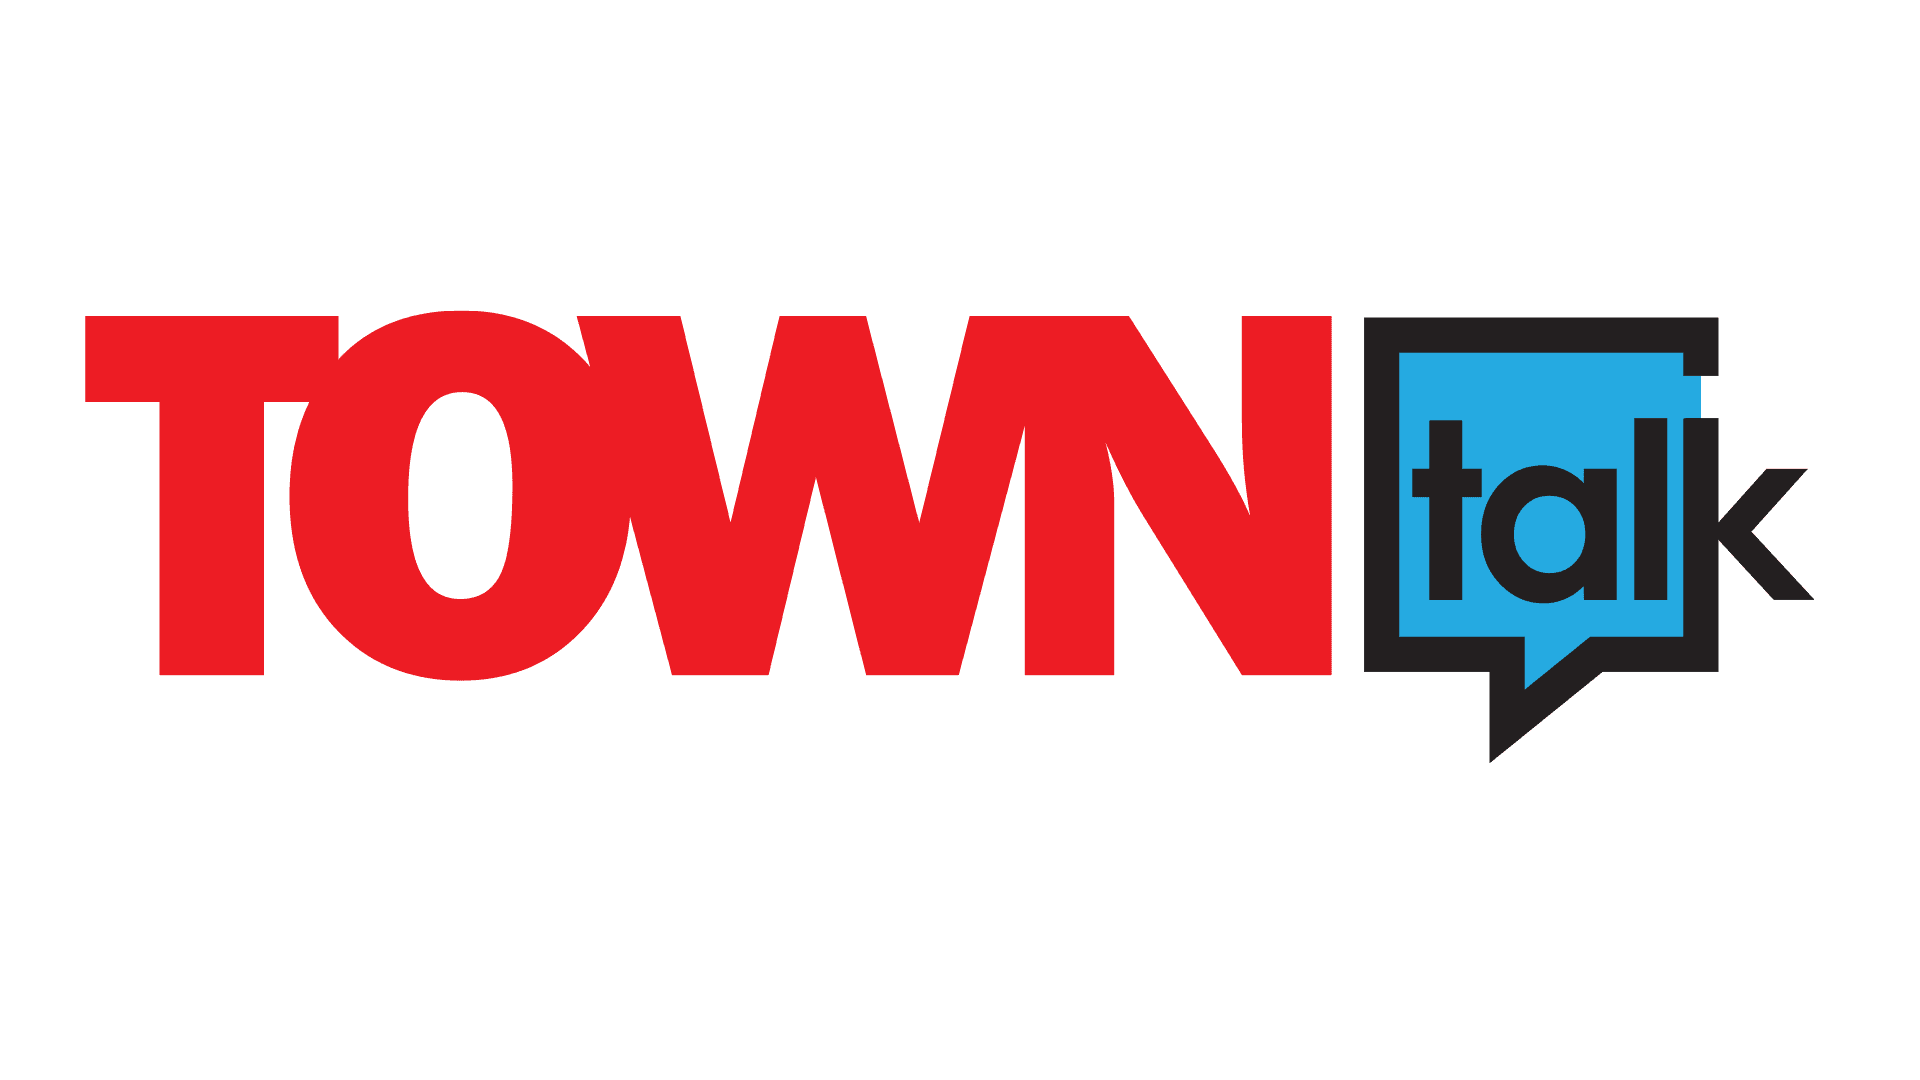 towntalk_logo Full Color